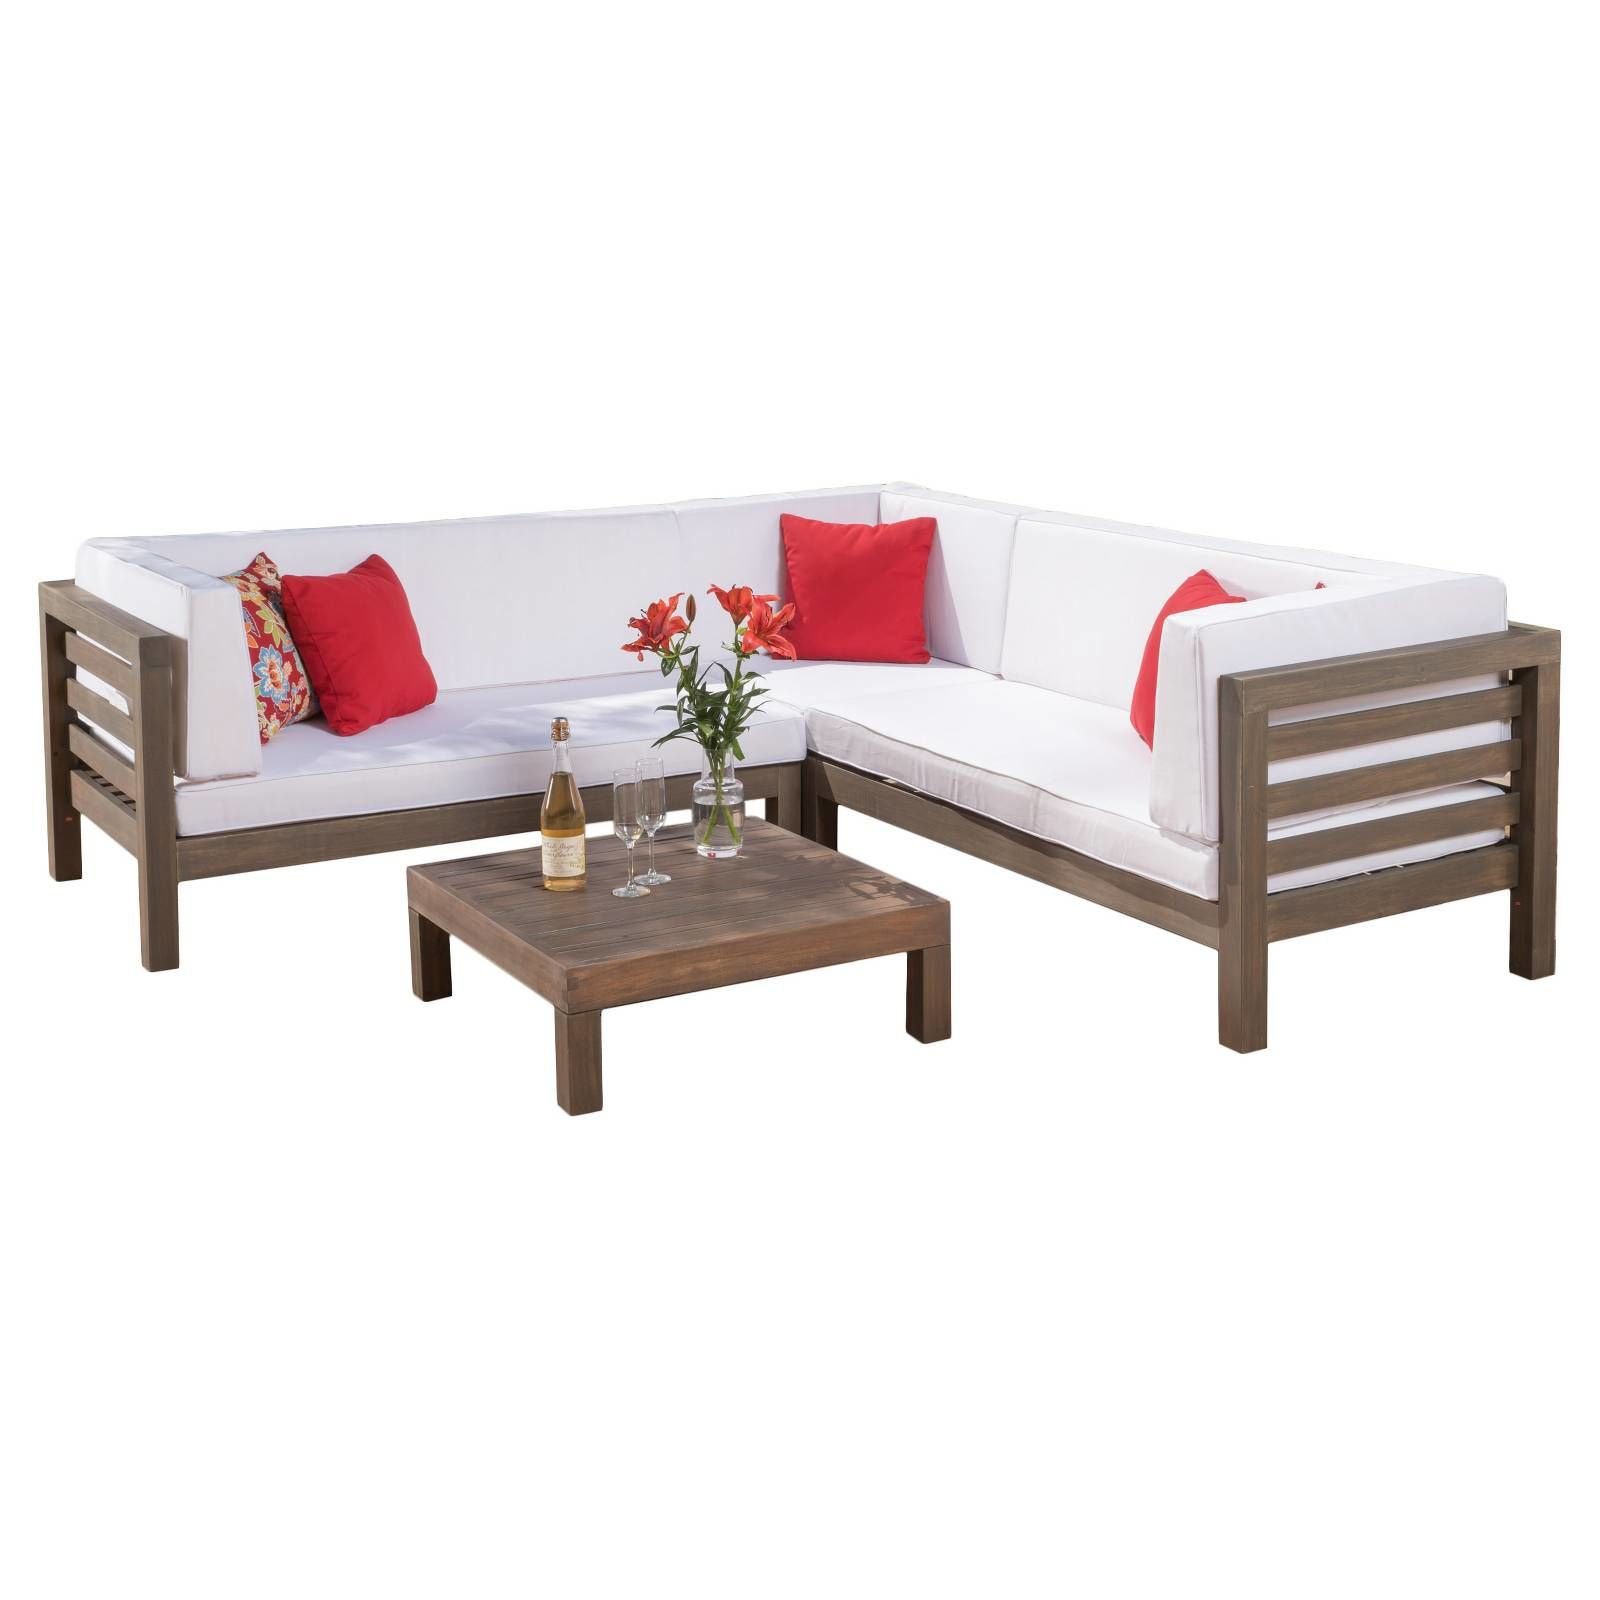 excellent christopher knight home puerta grey outdoor wicker sofa set layout-Fancy Christopher Knight Home Puerta Grey Outdoor Wicker sofa Set Plan